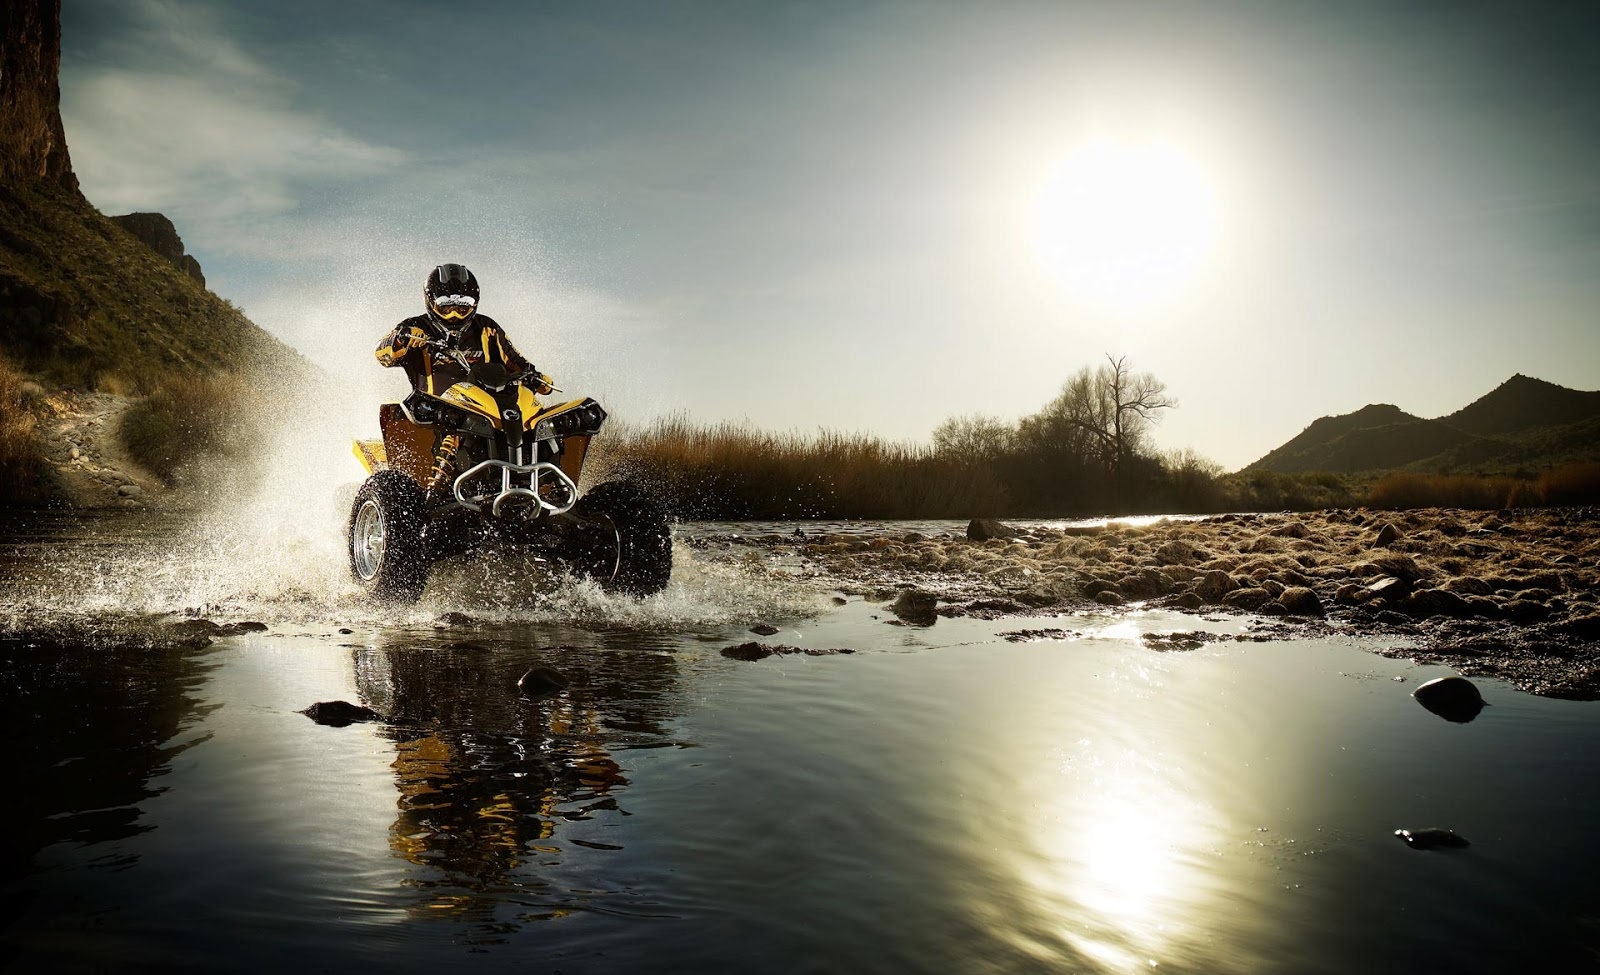 Bikes & Quads HD Wallpaper, bikes hd wallpapers | Amazing Wallpapers